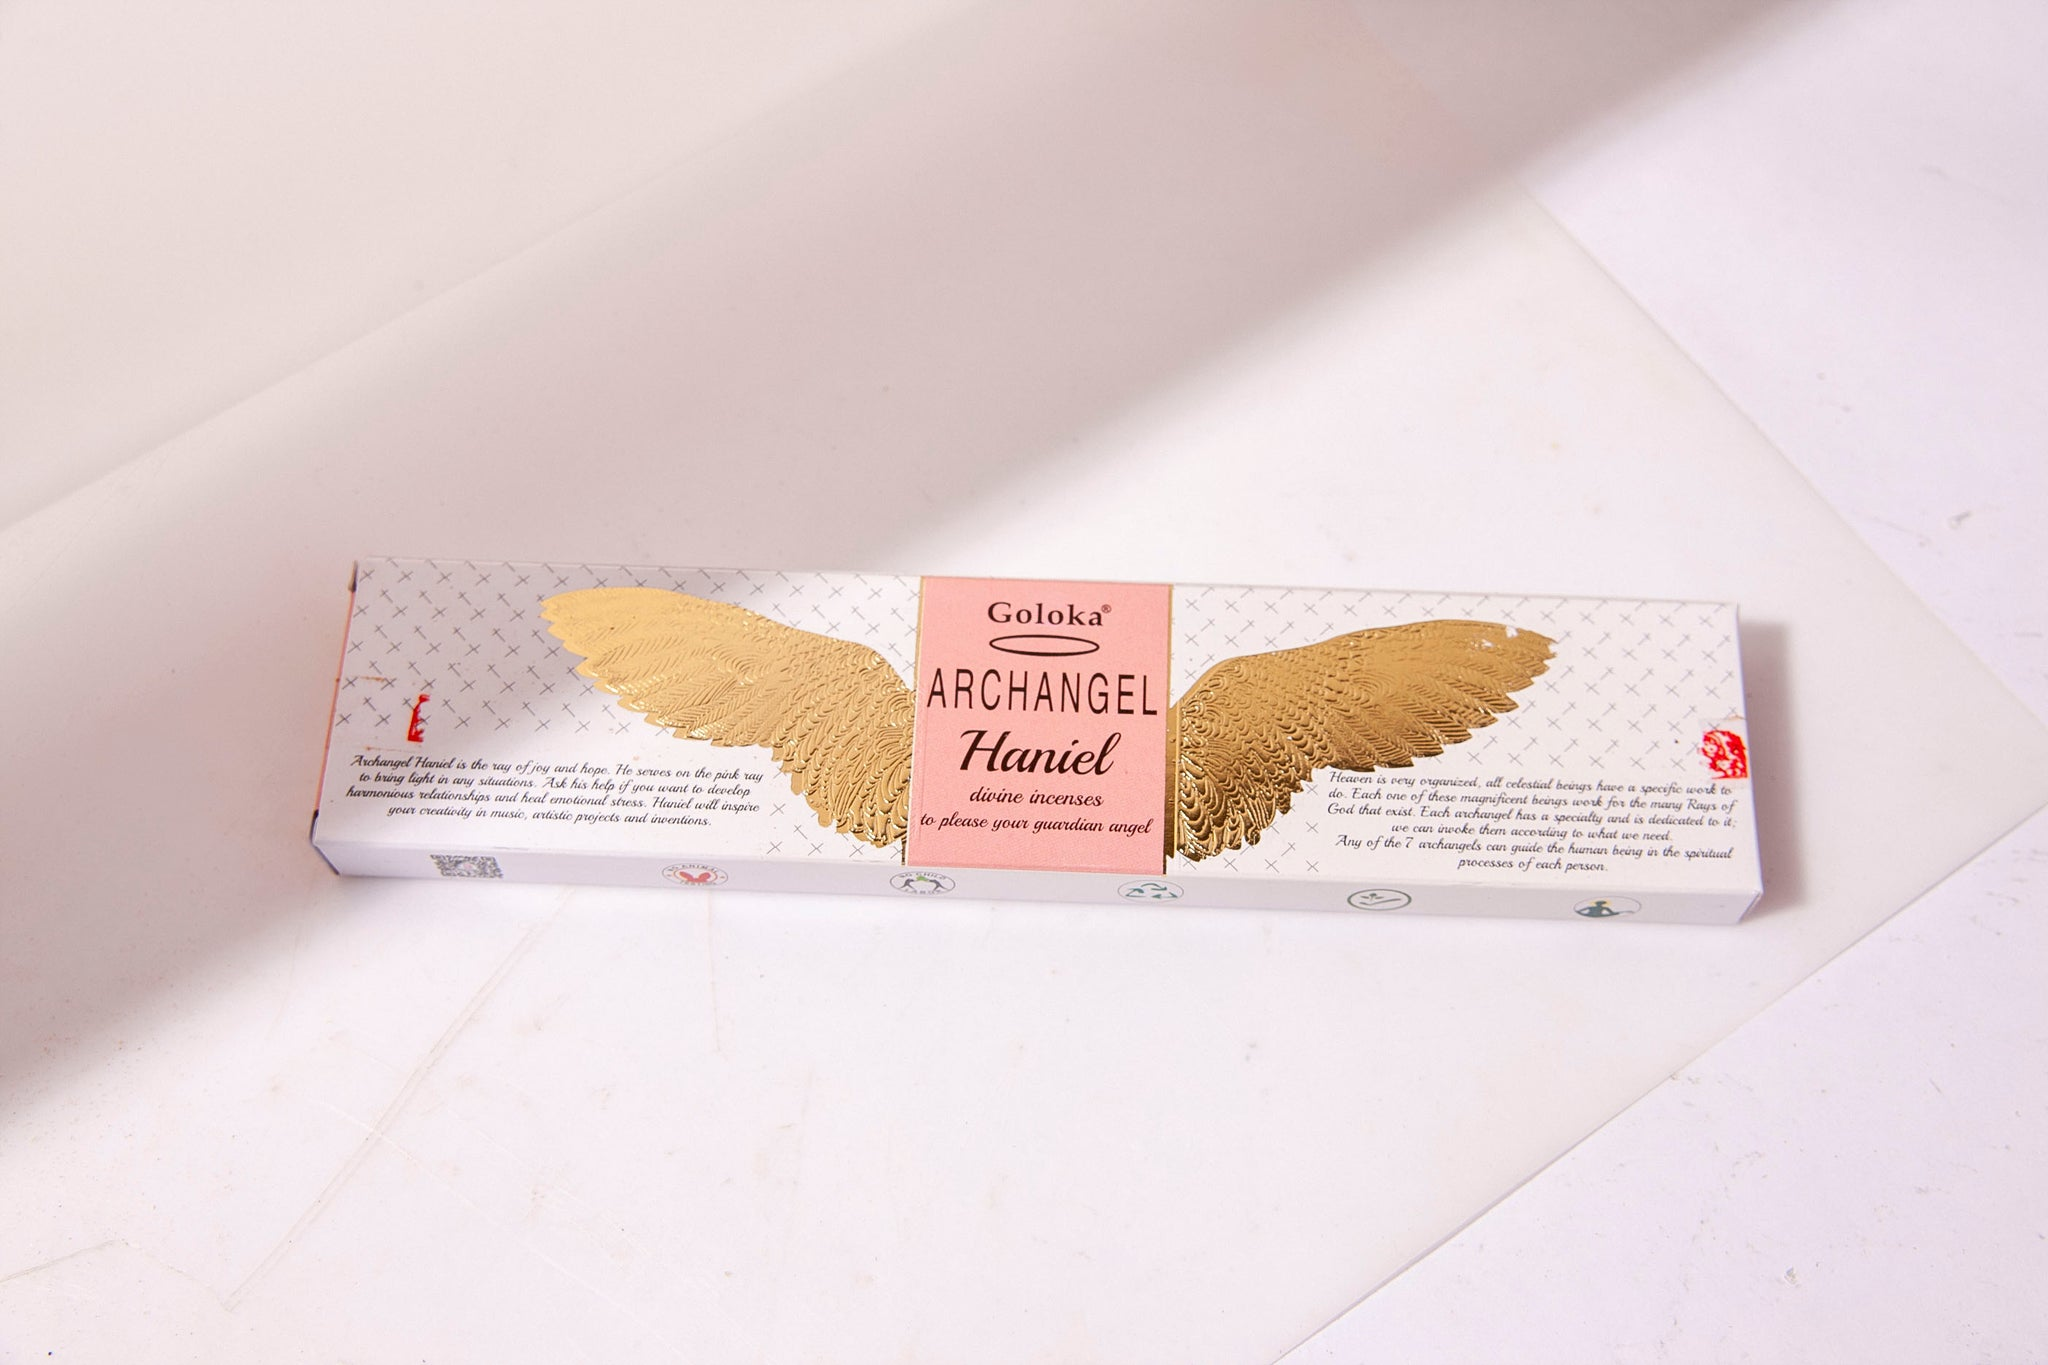 Archangel Haniel Incense